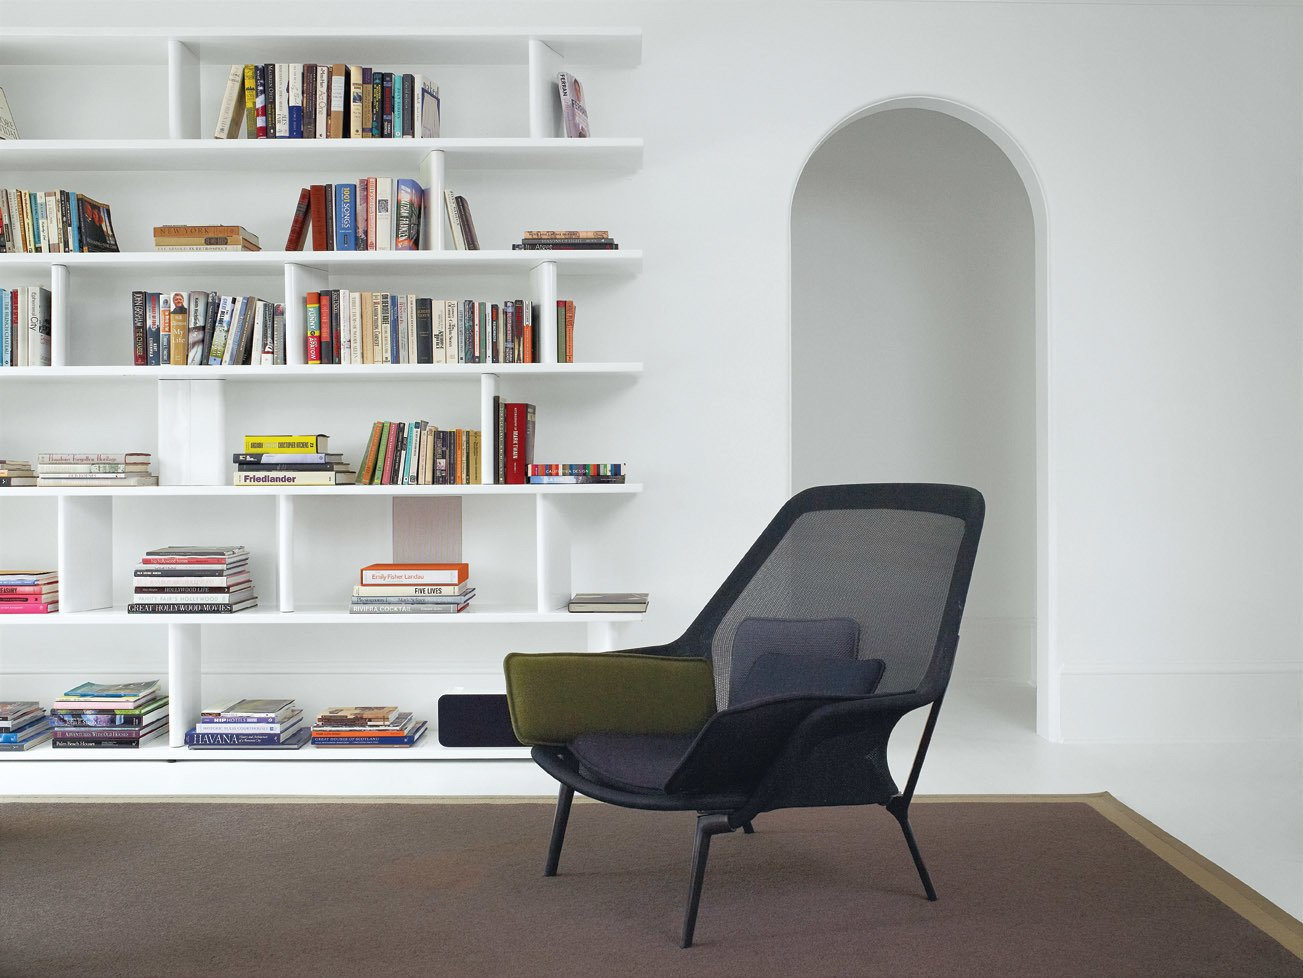 #seatingdesign #Slowchair #steel #bookcase #powder-coated #minimal #aesthetic #HillRenovation #BarbaraHill  100+ Best Modern Seating Designs by Dwell